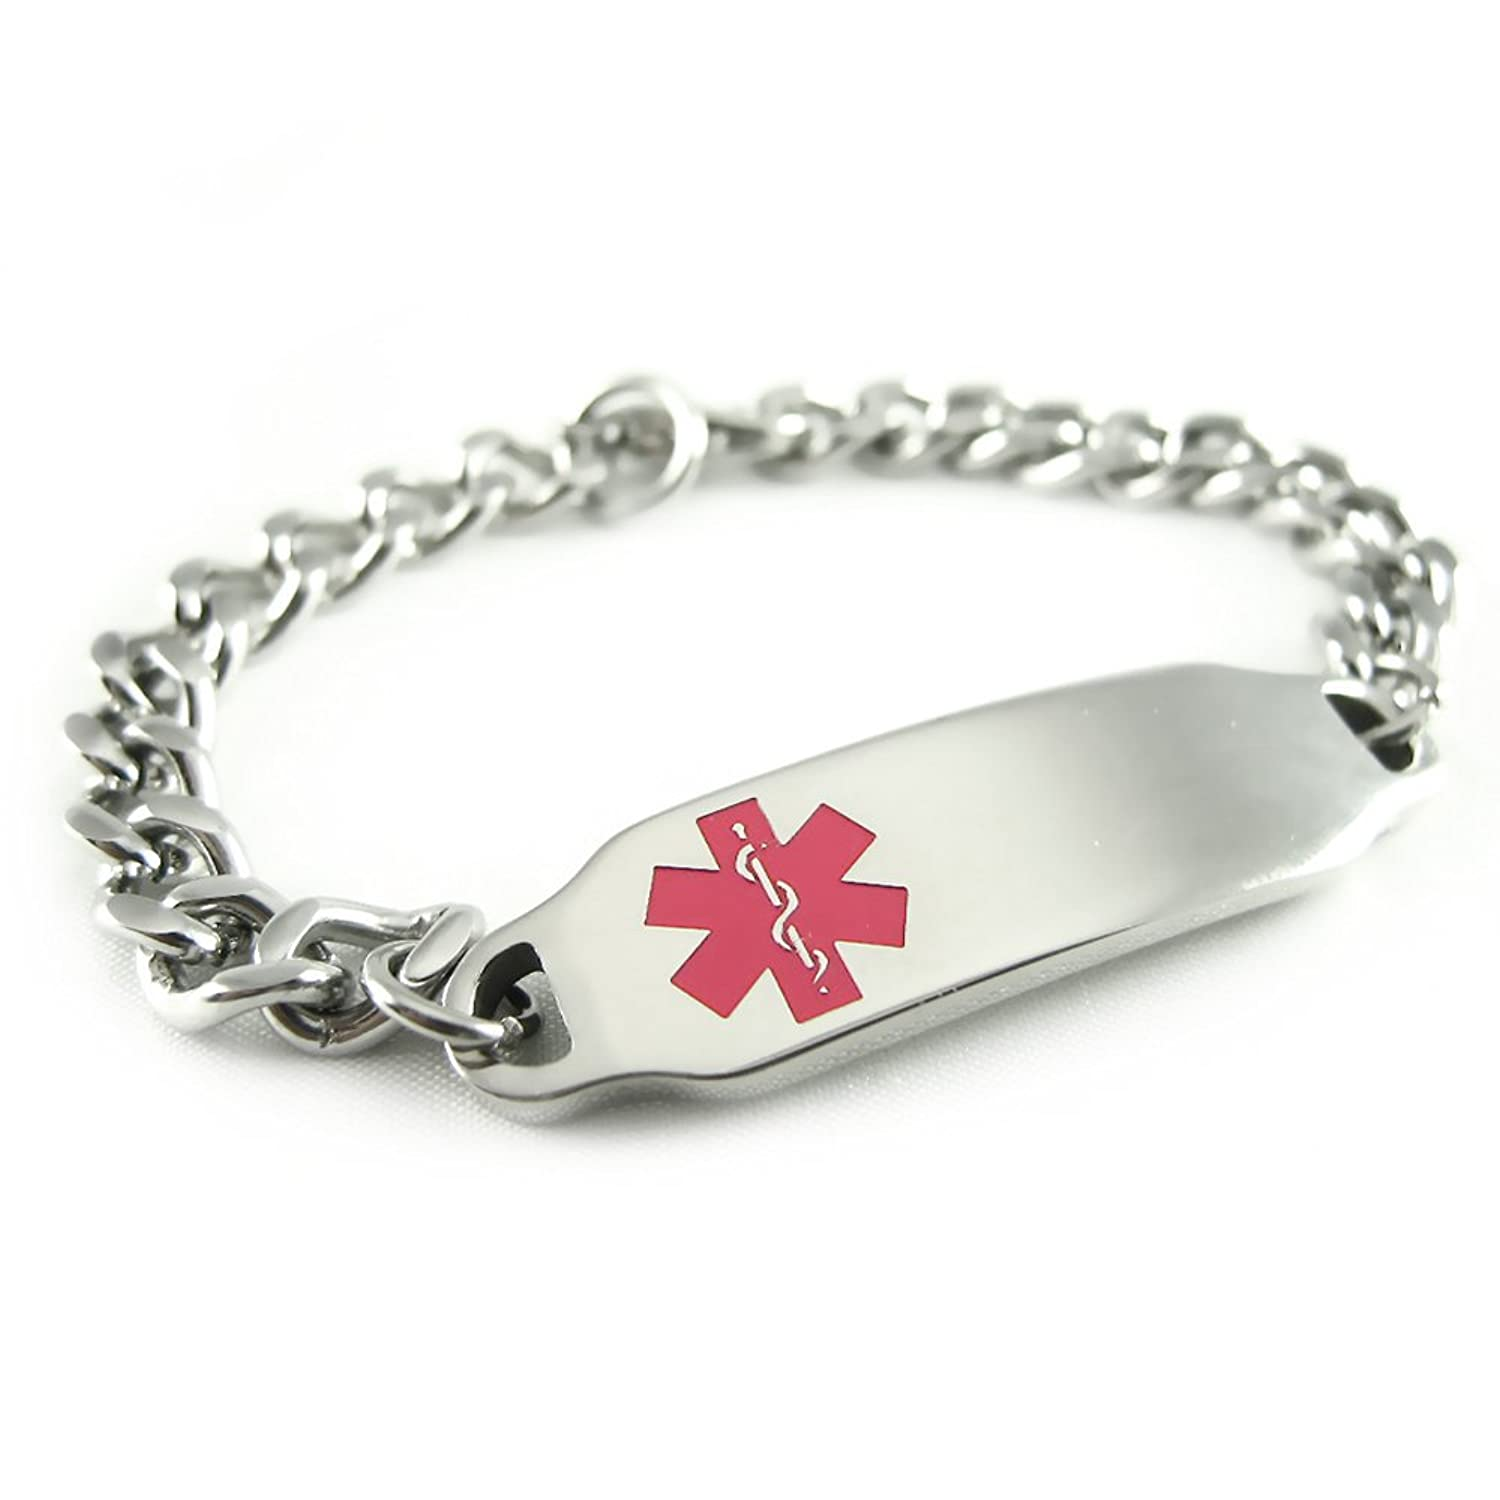 medical com french product morganfrench red bracelet alert morgan by single leather medic notonthehighstreet deep original